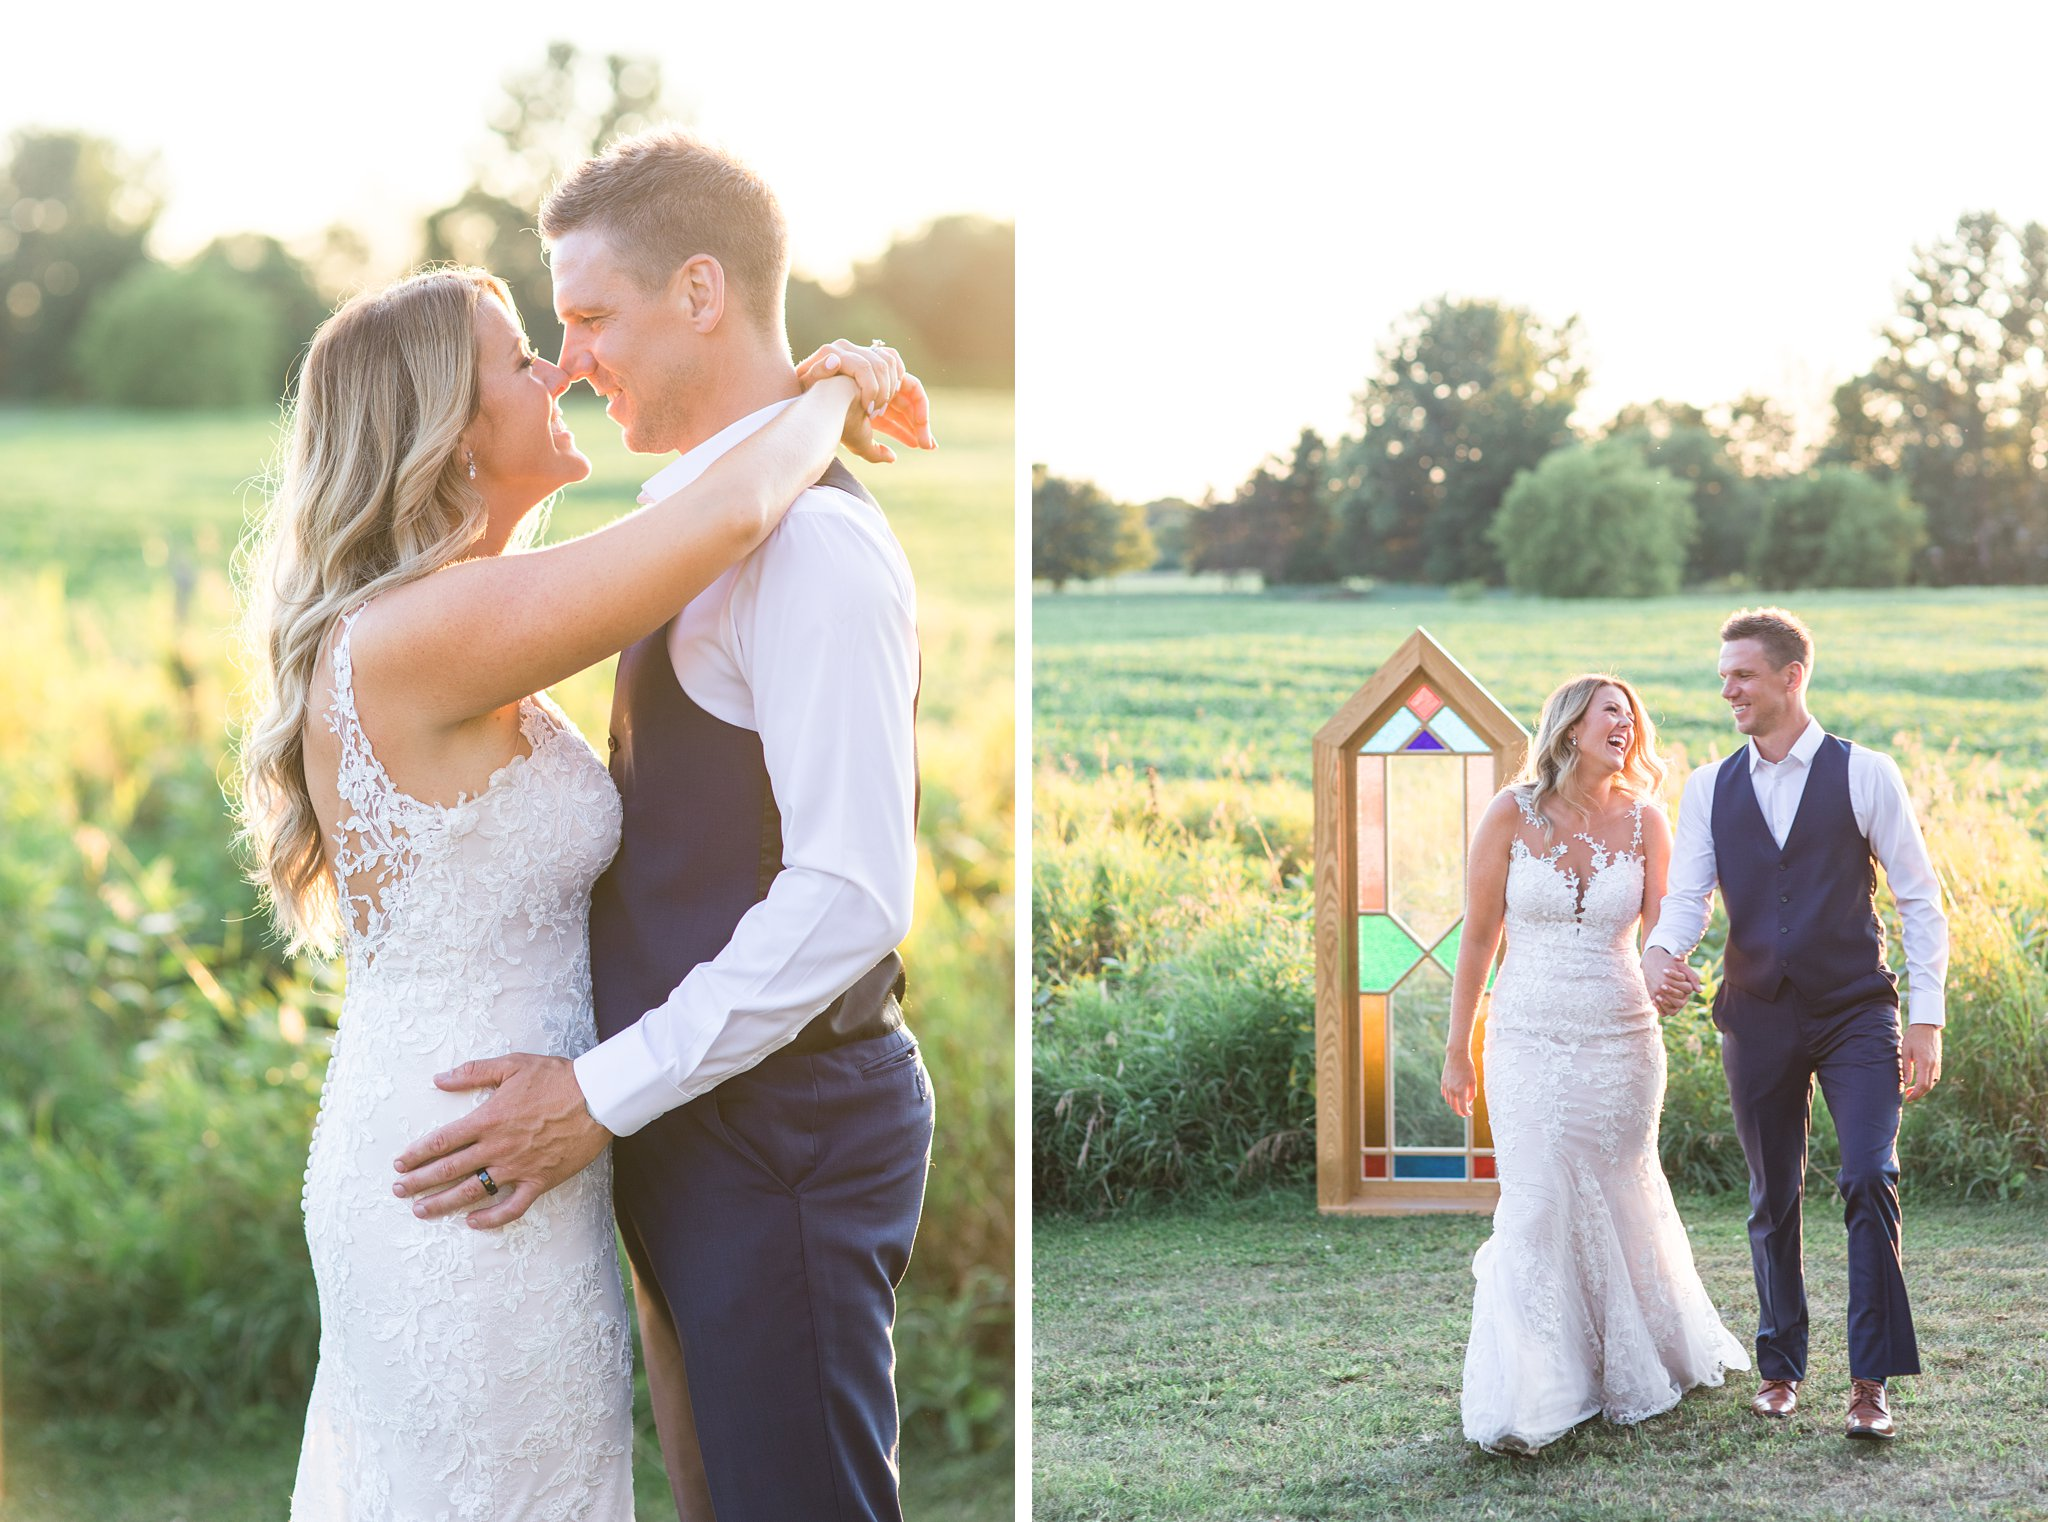 Sunset photos, stained glass window, field, Private Estate Wedding Photos, Amy Pinder Photography